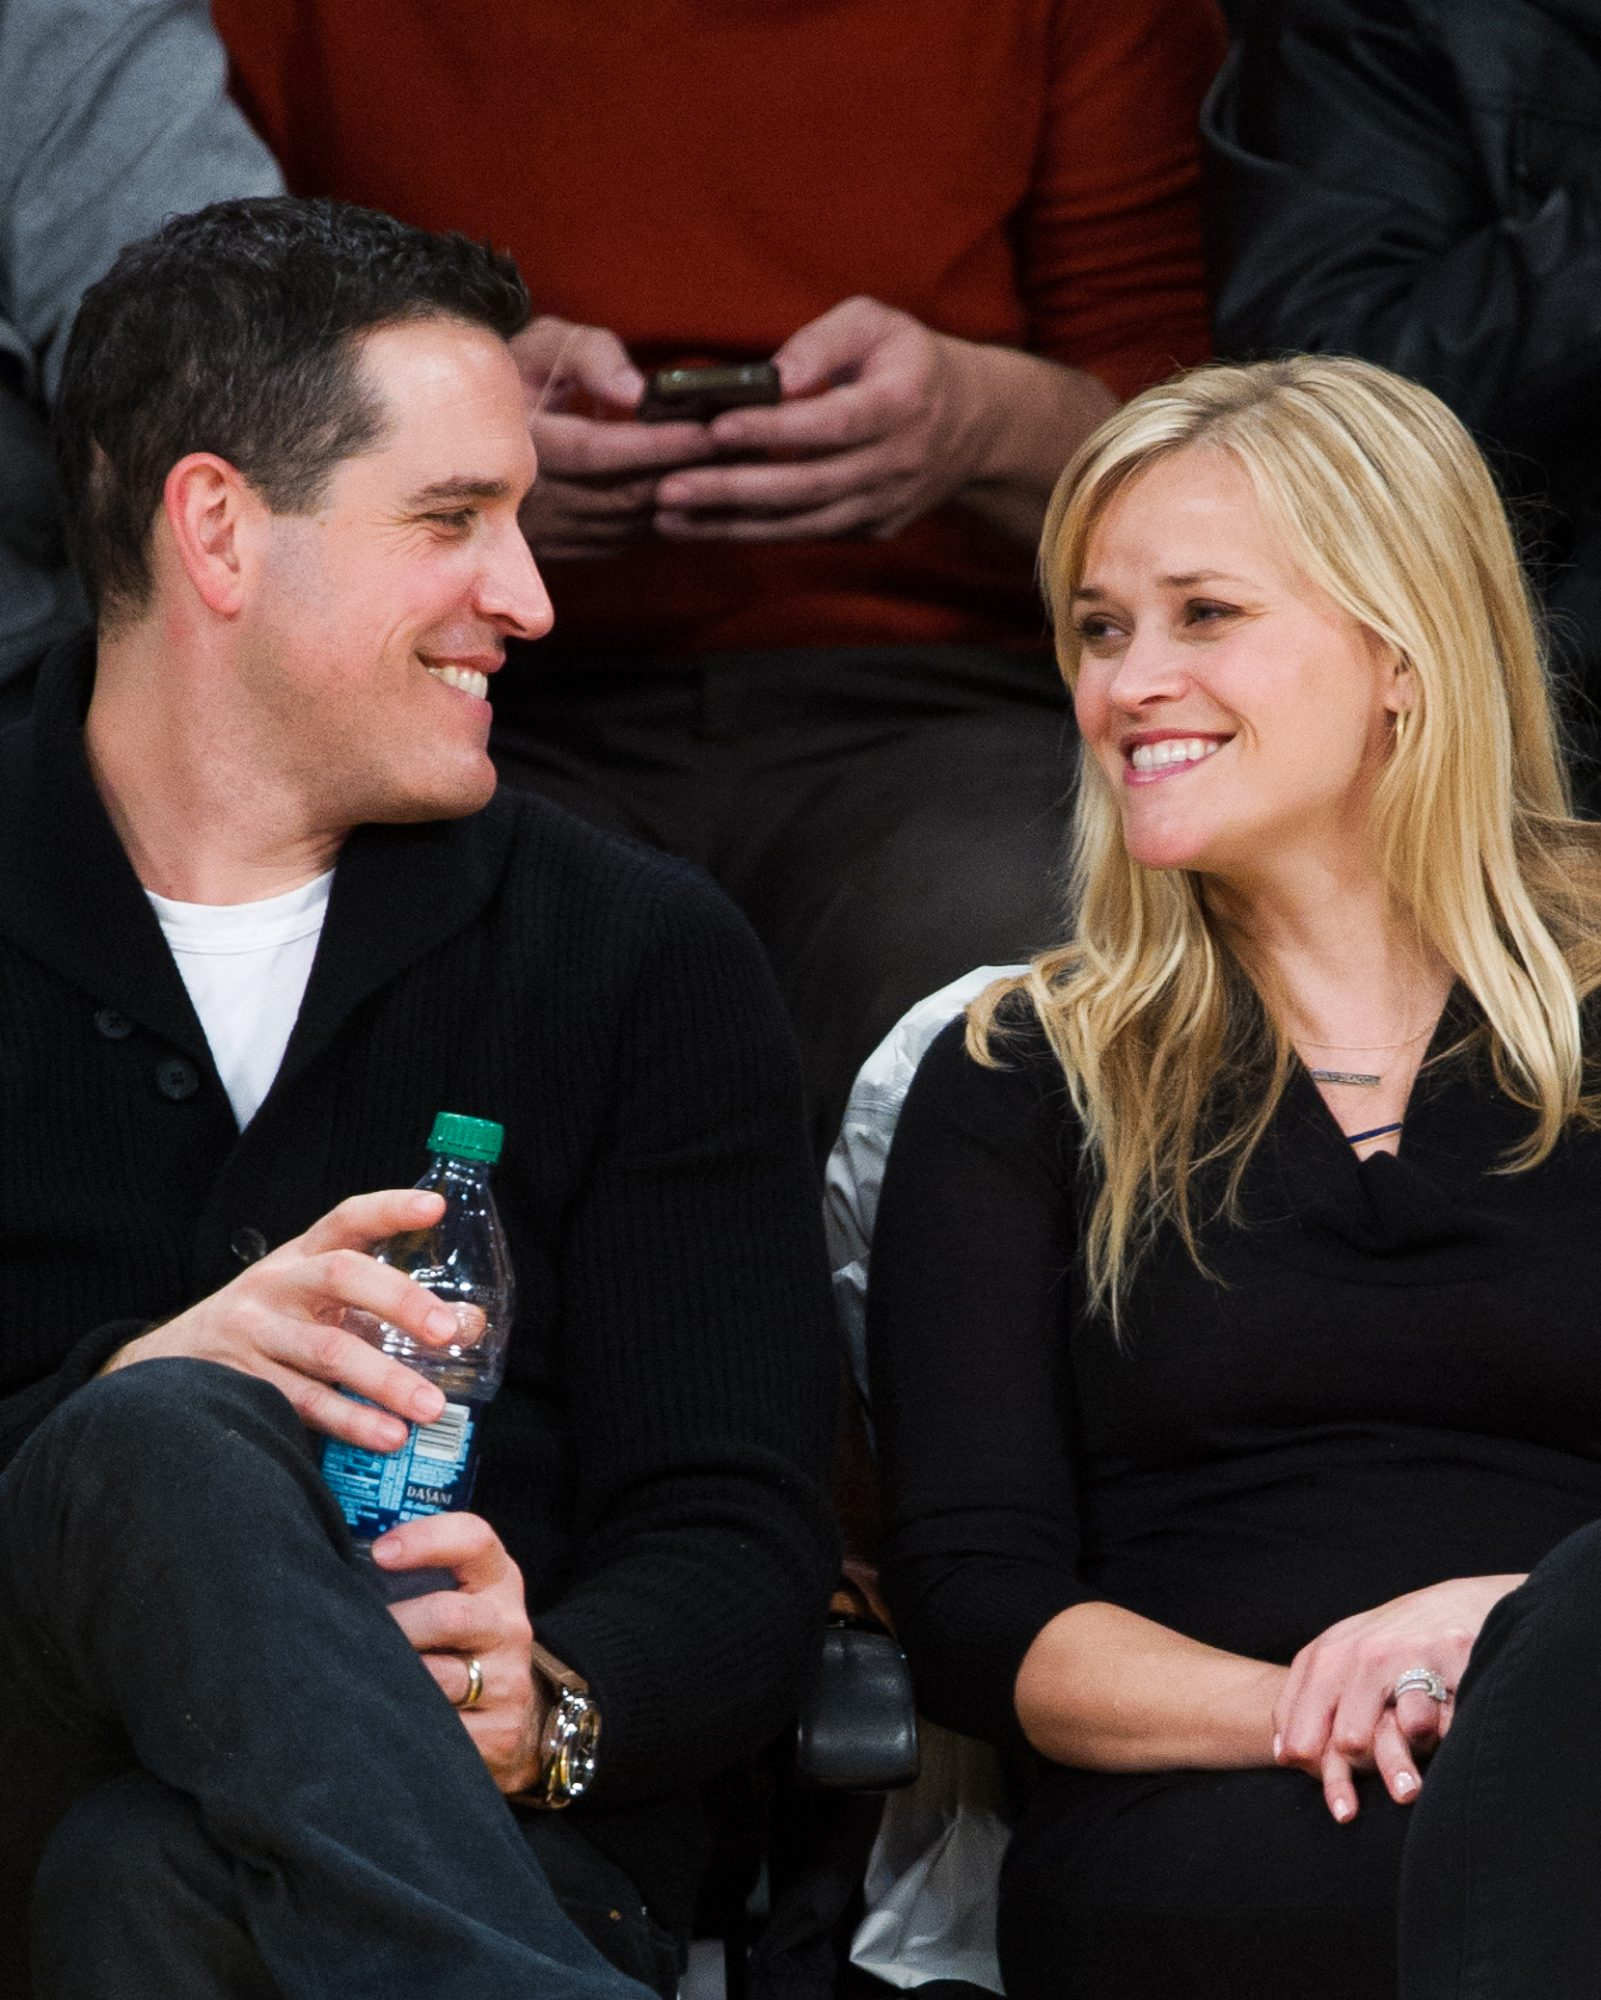 celebs-courtside-reese-witherspoon-jim-toth-0616.jpg